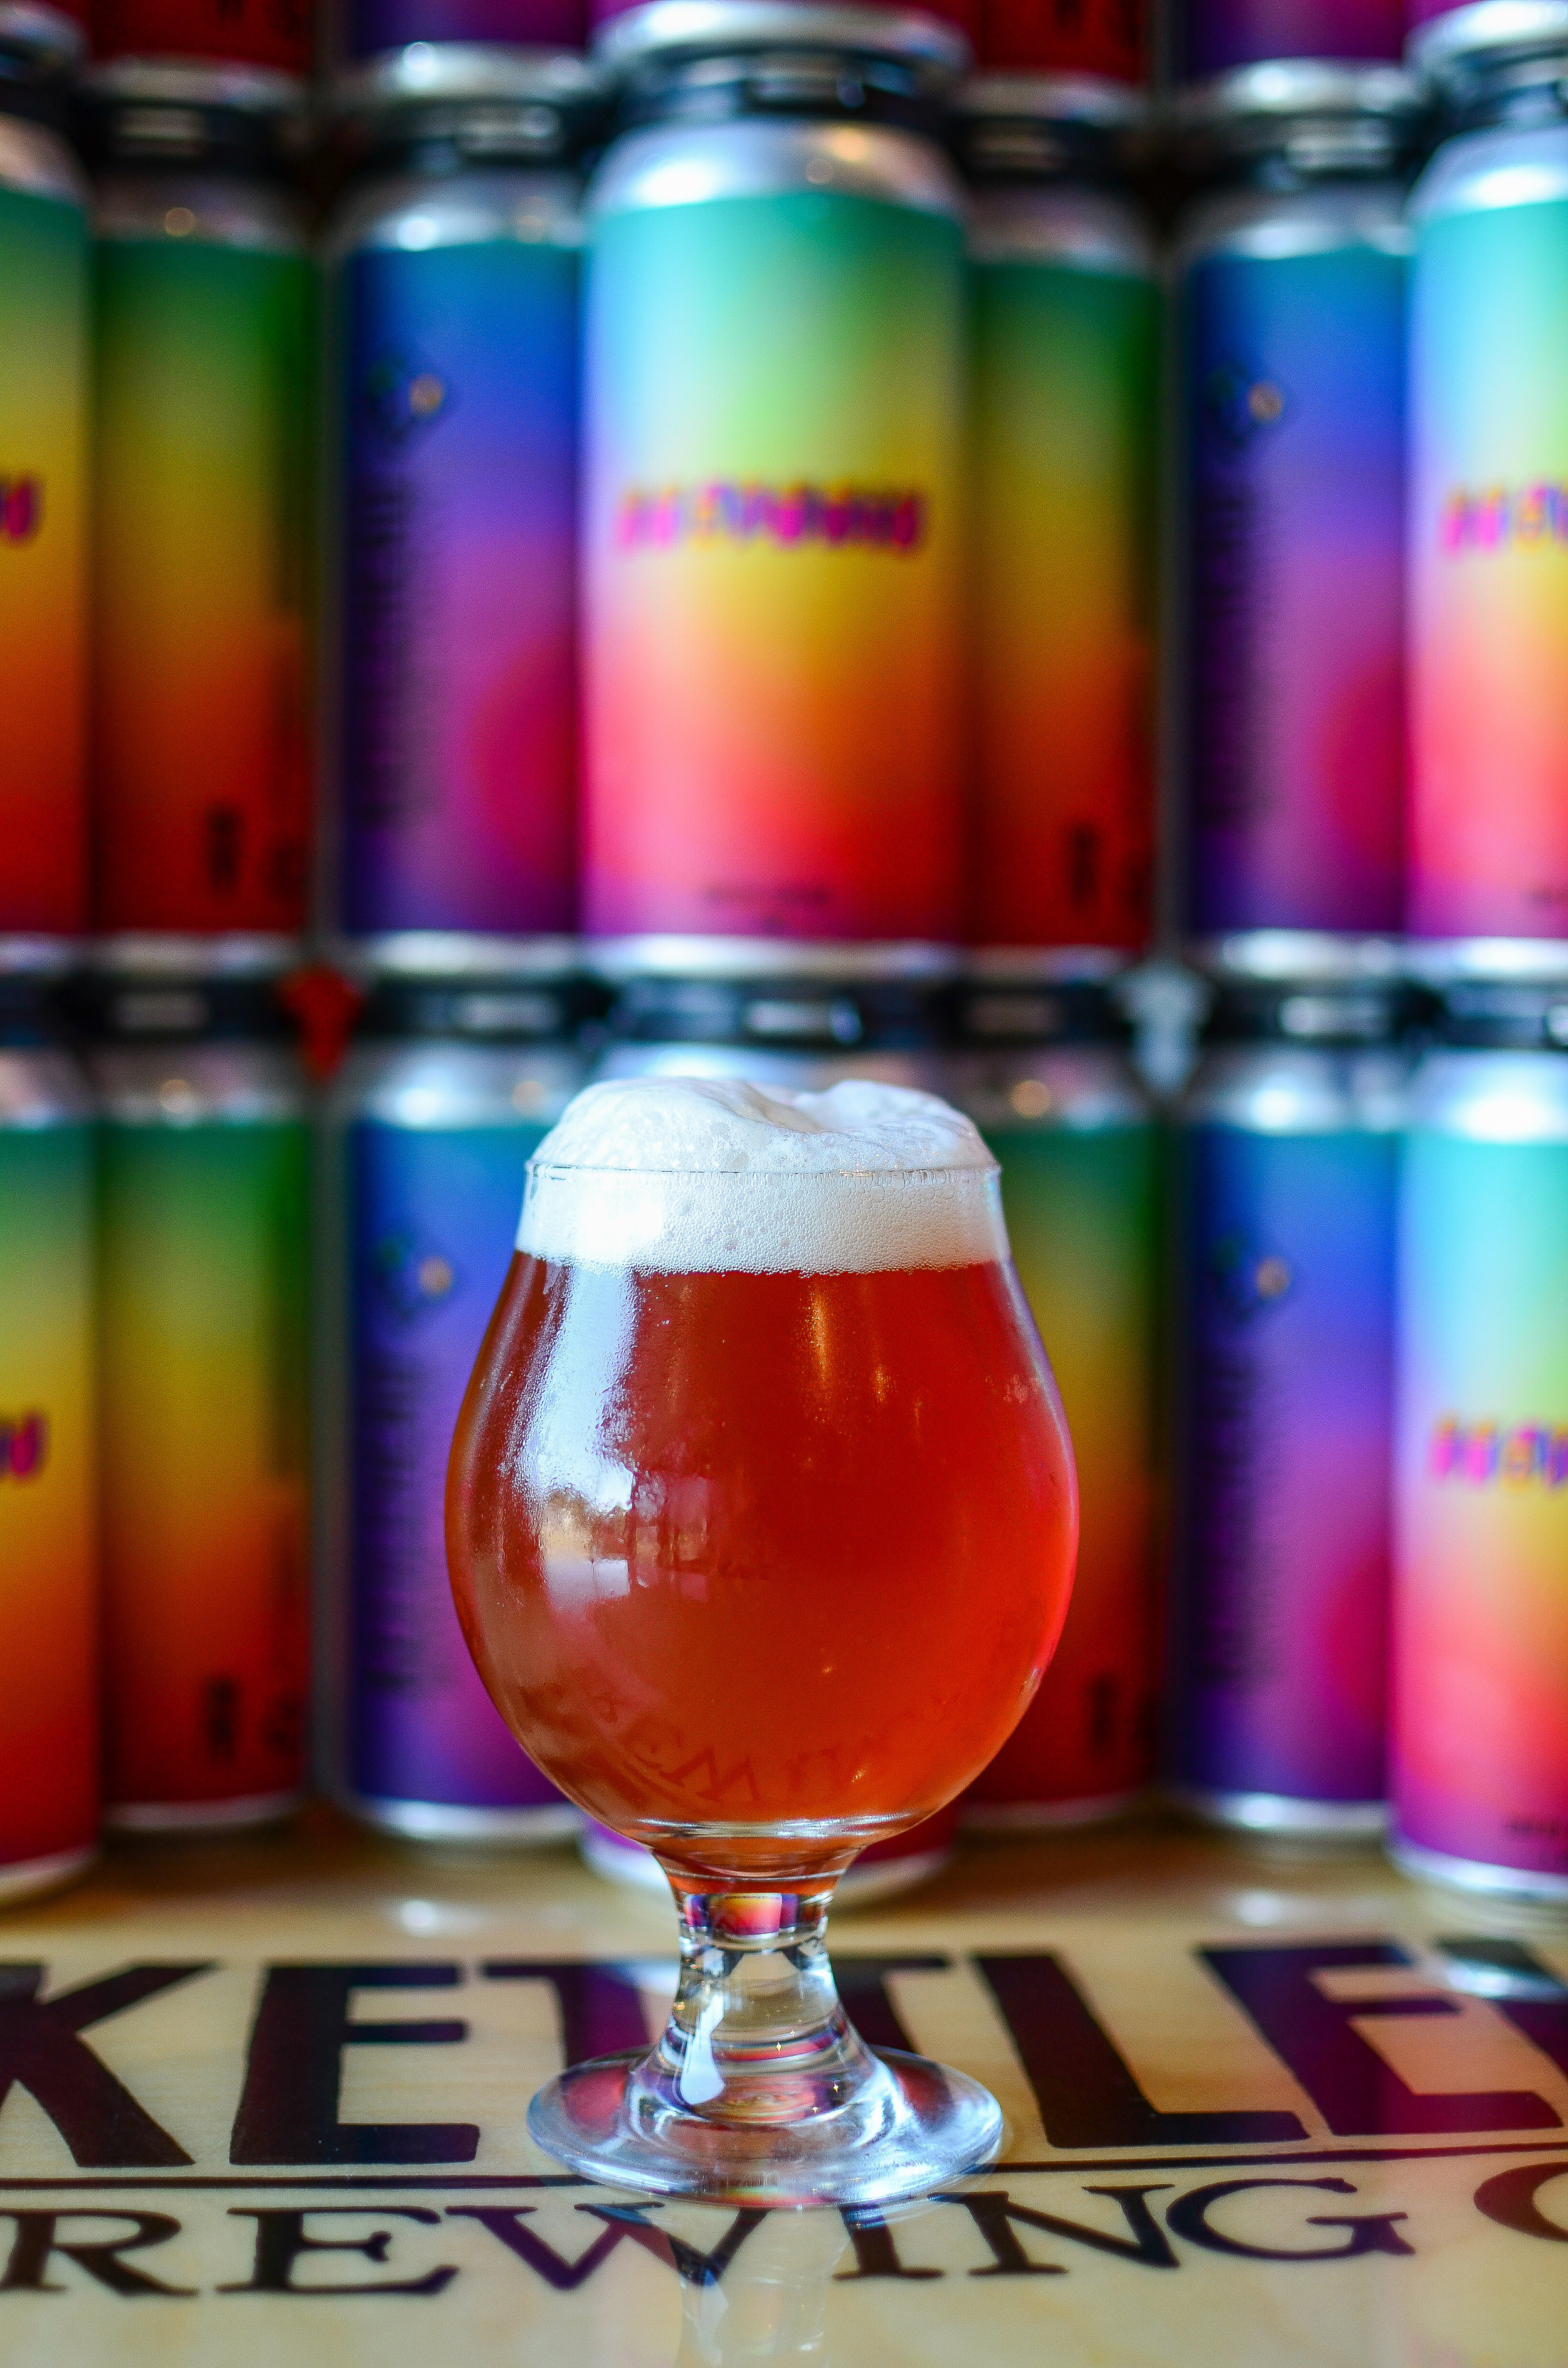 Esoteric, Sour IPA, 6.5% - ESOTERIC Sour IPA with wild berries and Mosaic hops. Tart, fruity and FUN.